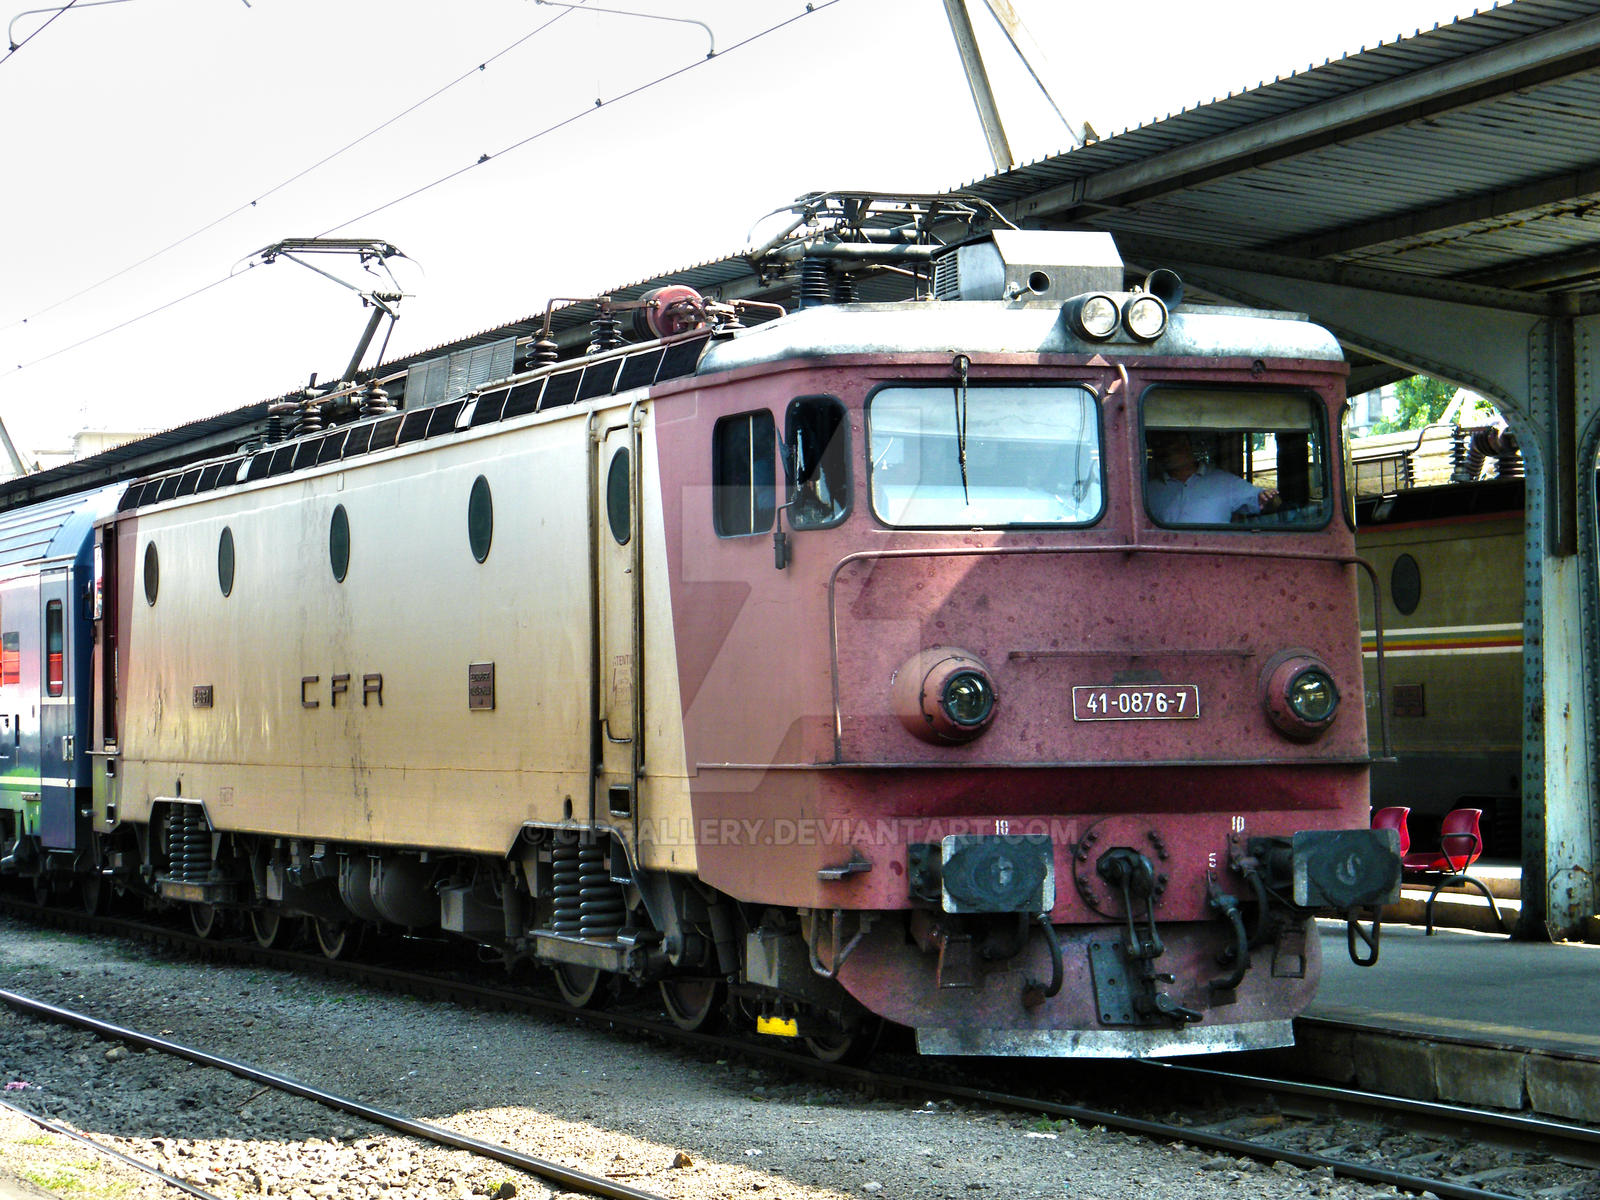 Locomotiva 41 - 0876 - 7 by Cipgallery